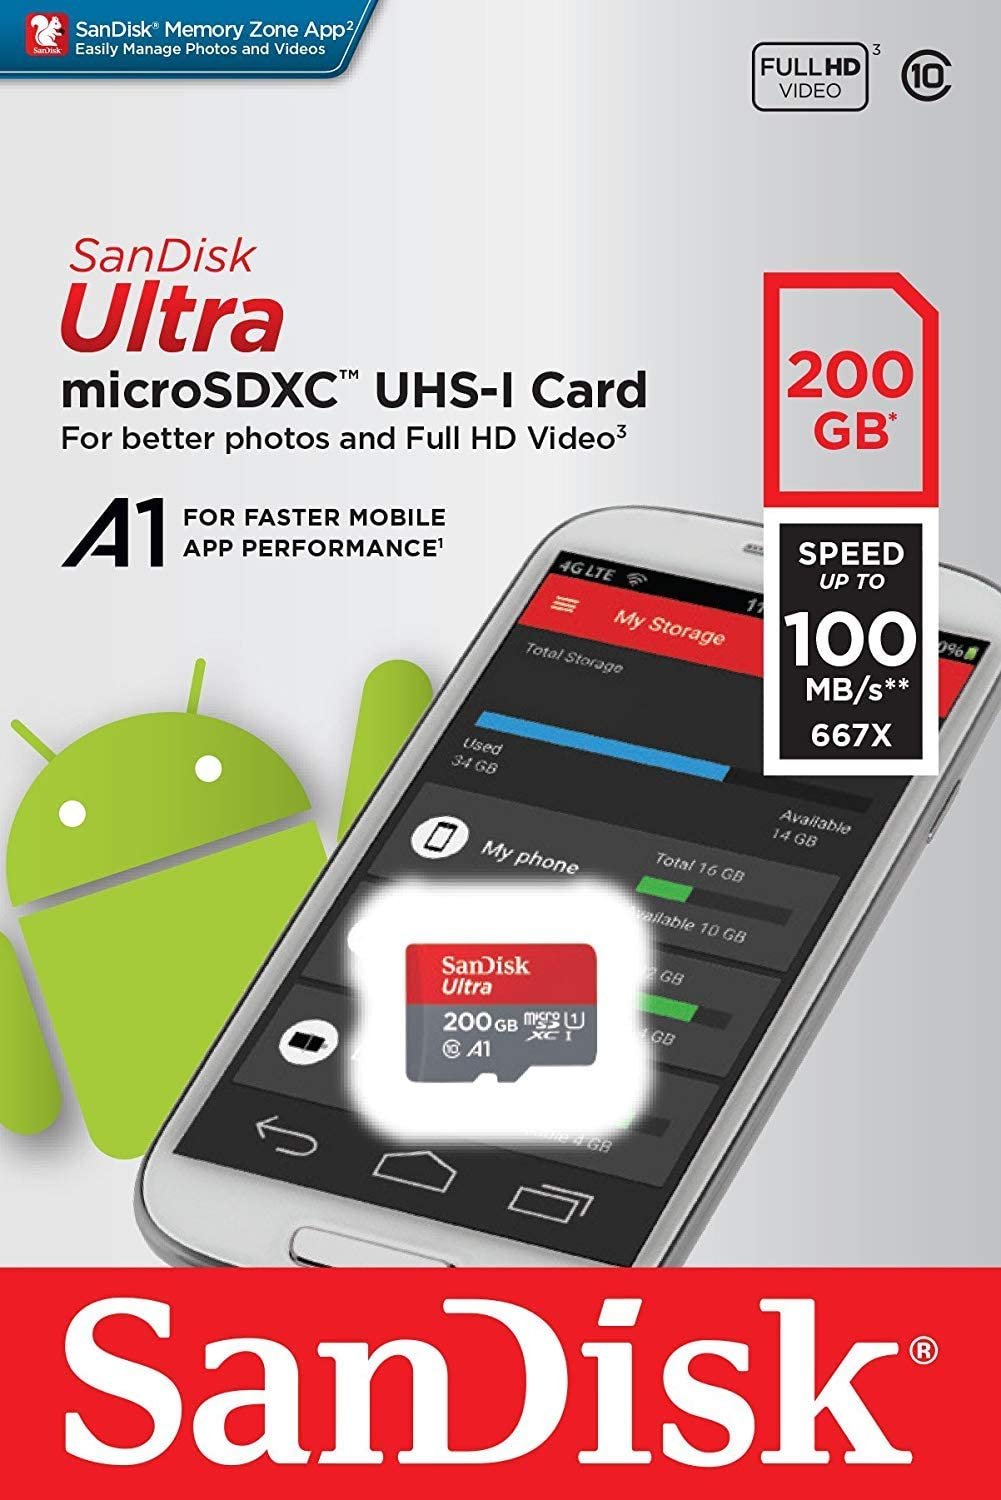 SanDisk Ultra 200GB MicroSDXC Verified for Karbonn Alfa A18 by SanFlash 100MBs A1 U1 C10 Works with SanDisk